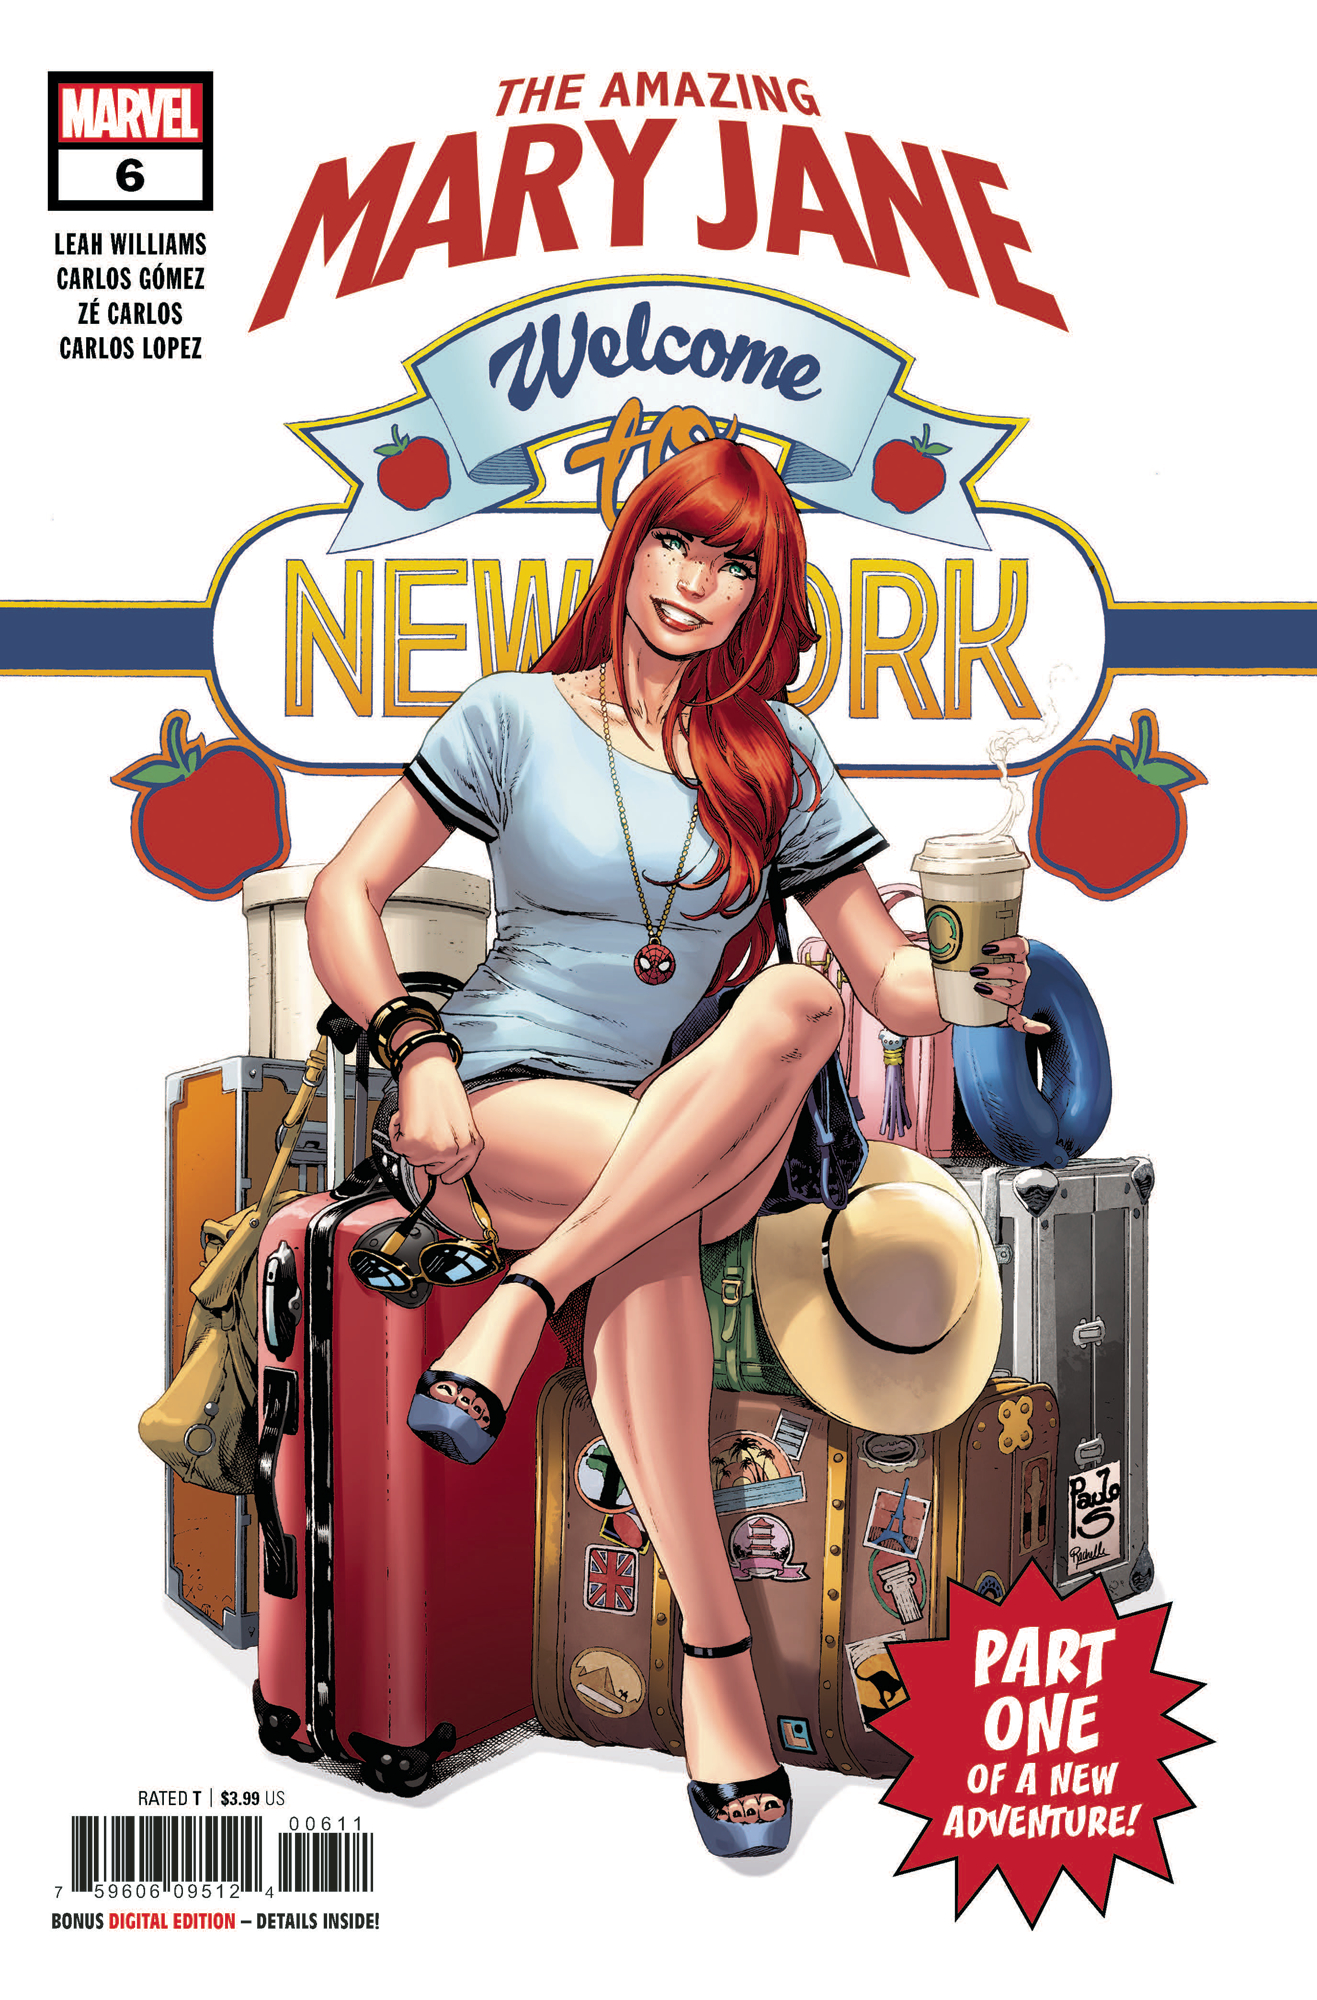 AMAZING MARY JANE #6